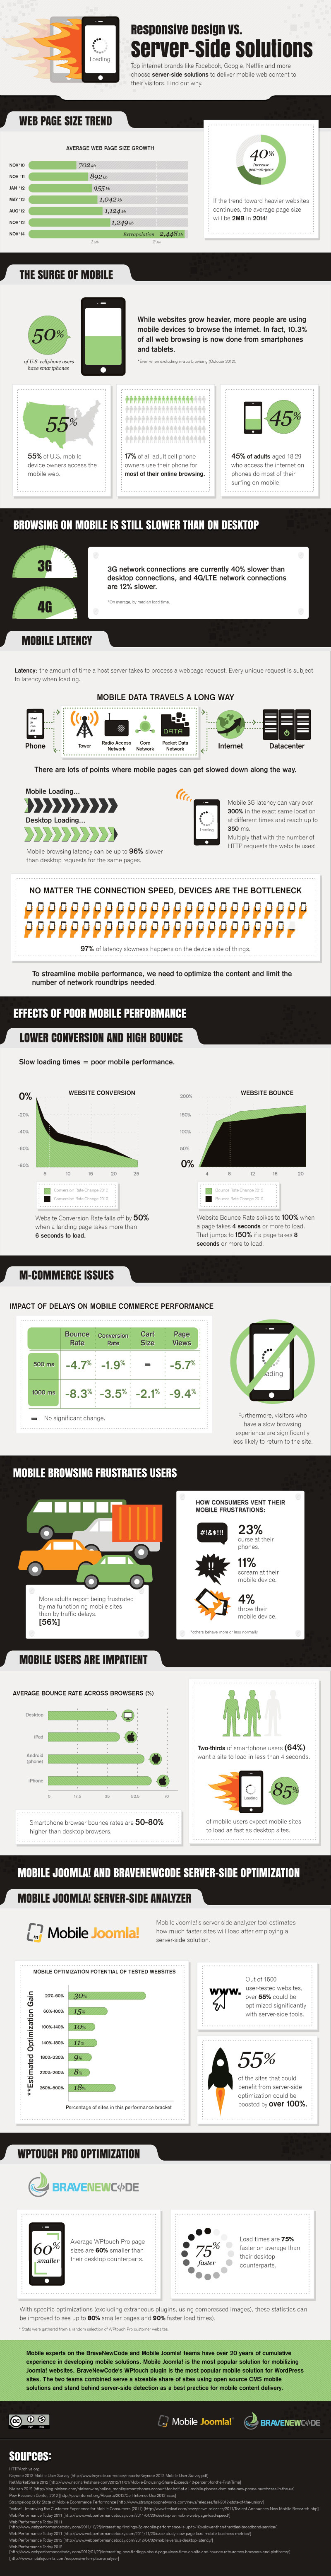 instantShift - Do You Really Need Responsive Web Design?